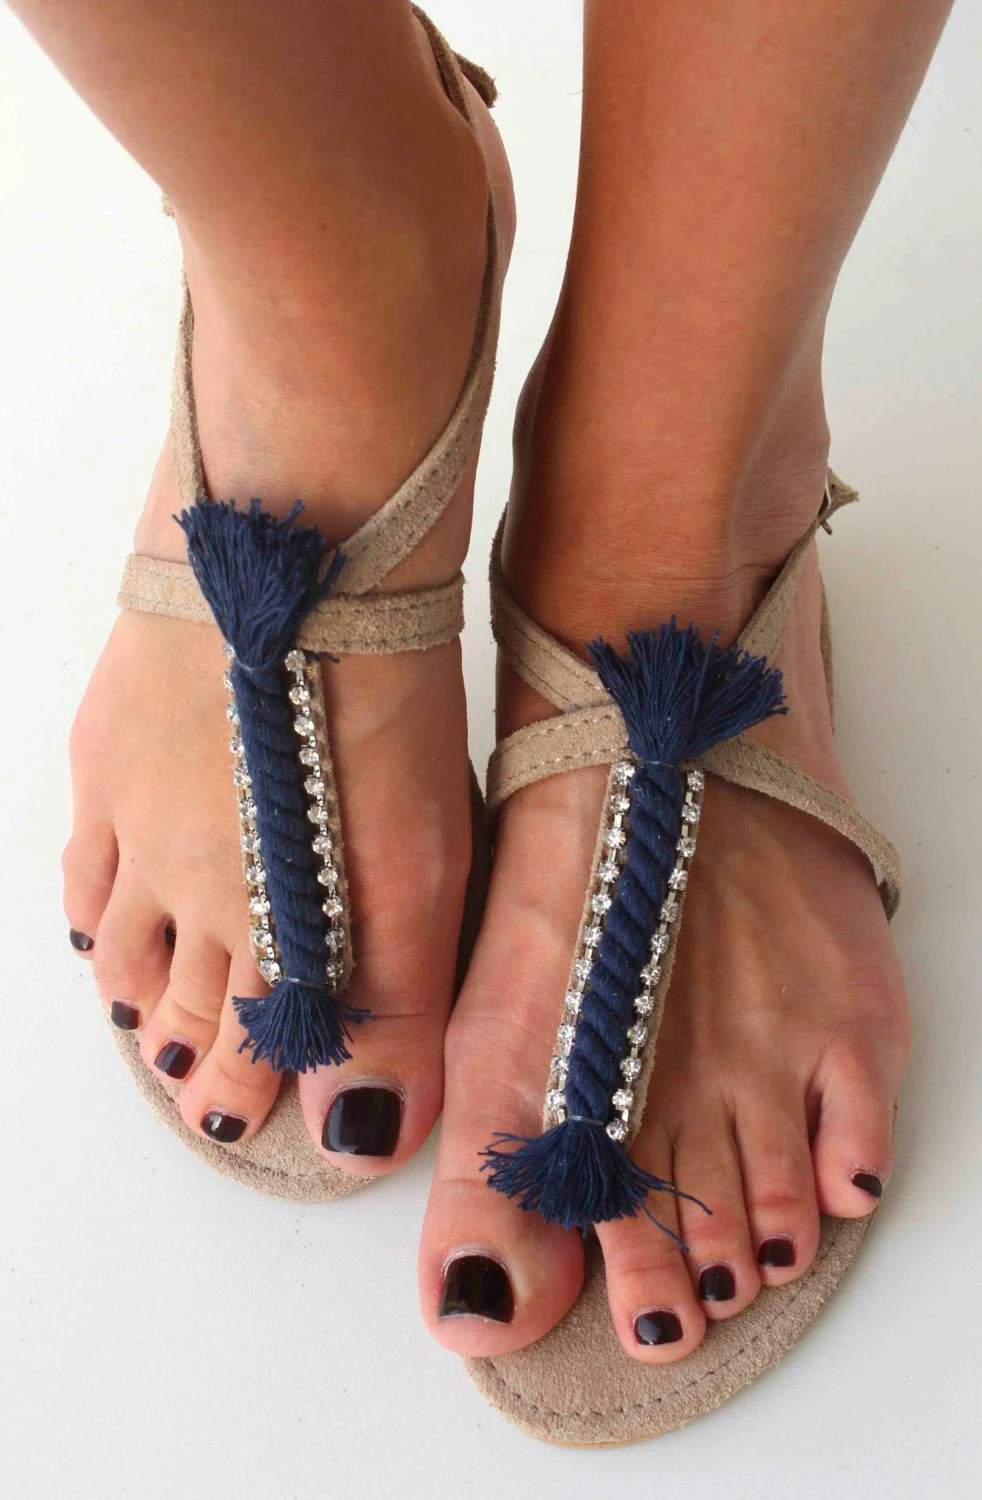 Leather Sandals with Nautical Rope and Swarovski rhinestones - Navy blue Sandals - Genuine Leather Sandals